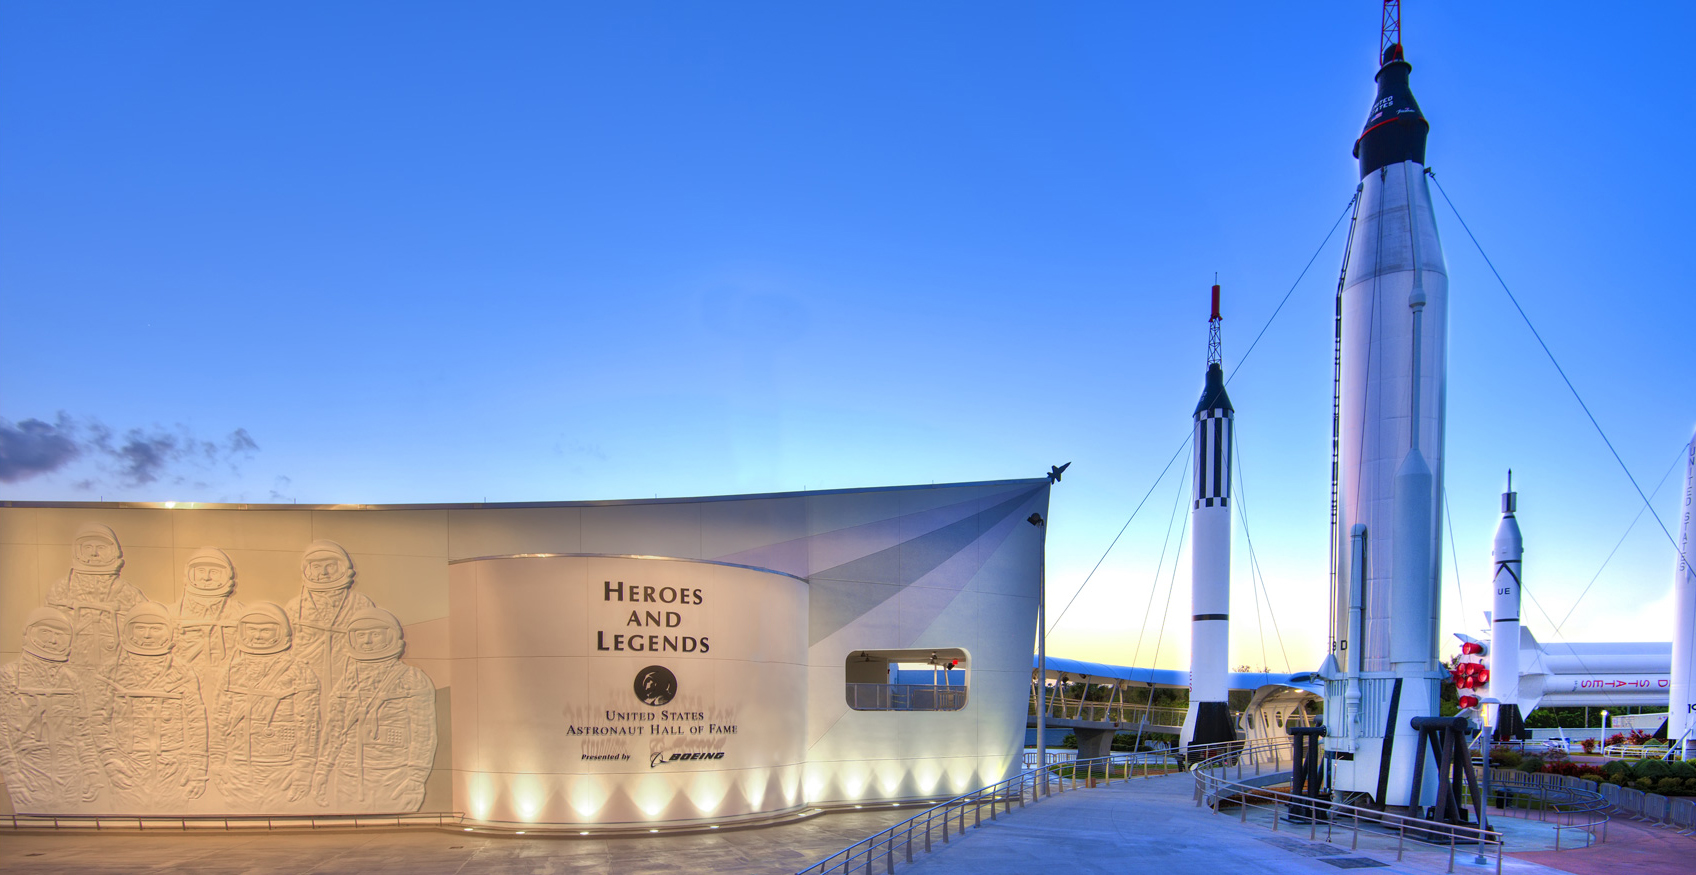 Heroes and Legends at Kennedy Space Center Visitor Complex